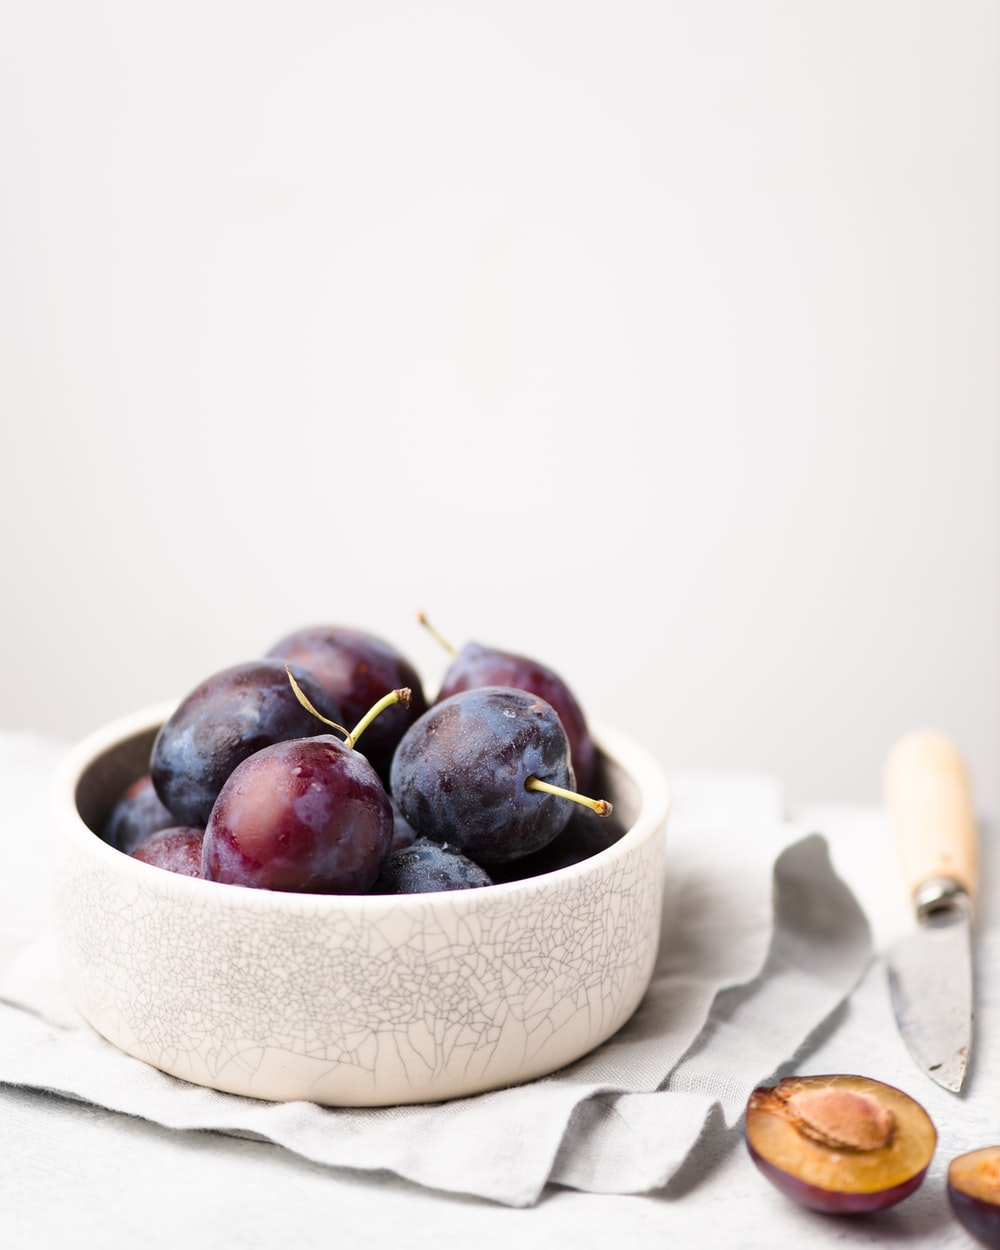 purple grapes on round white bowl